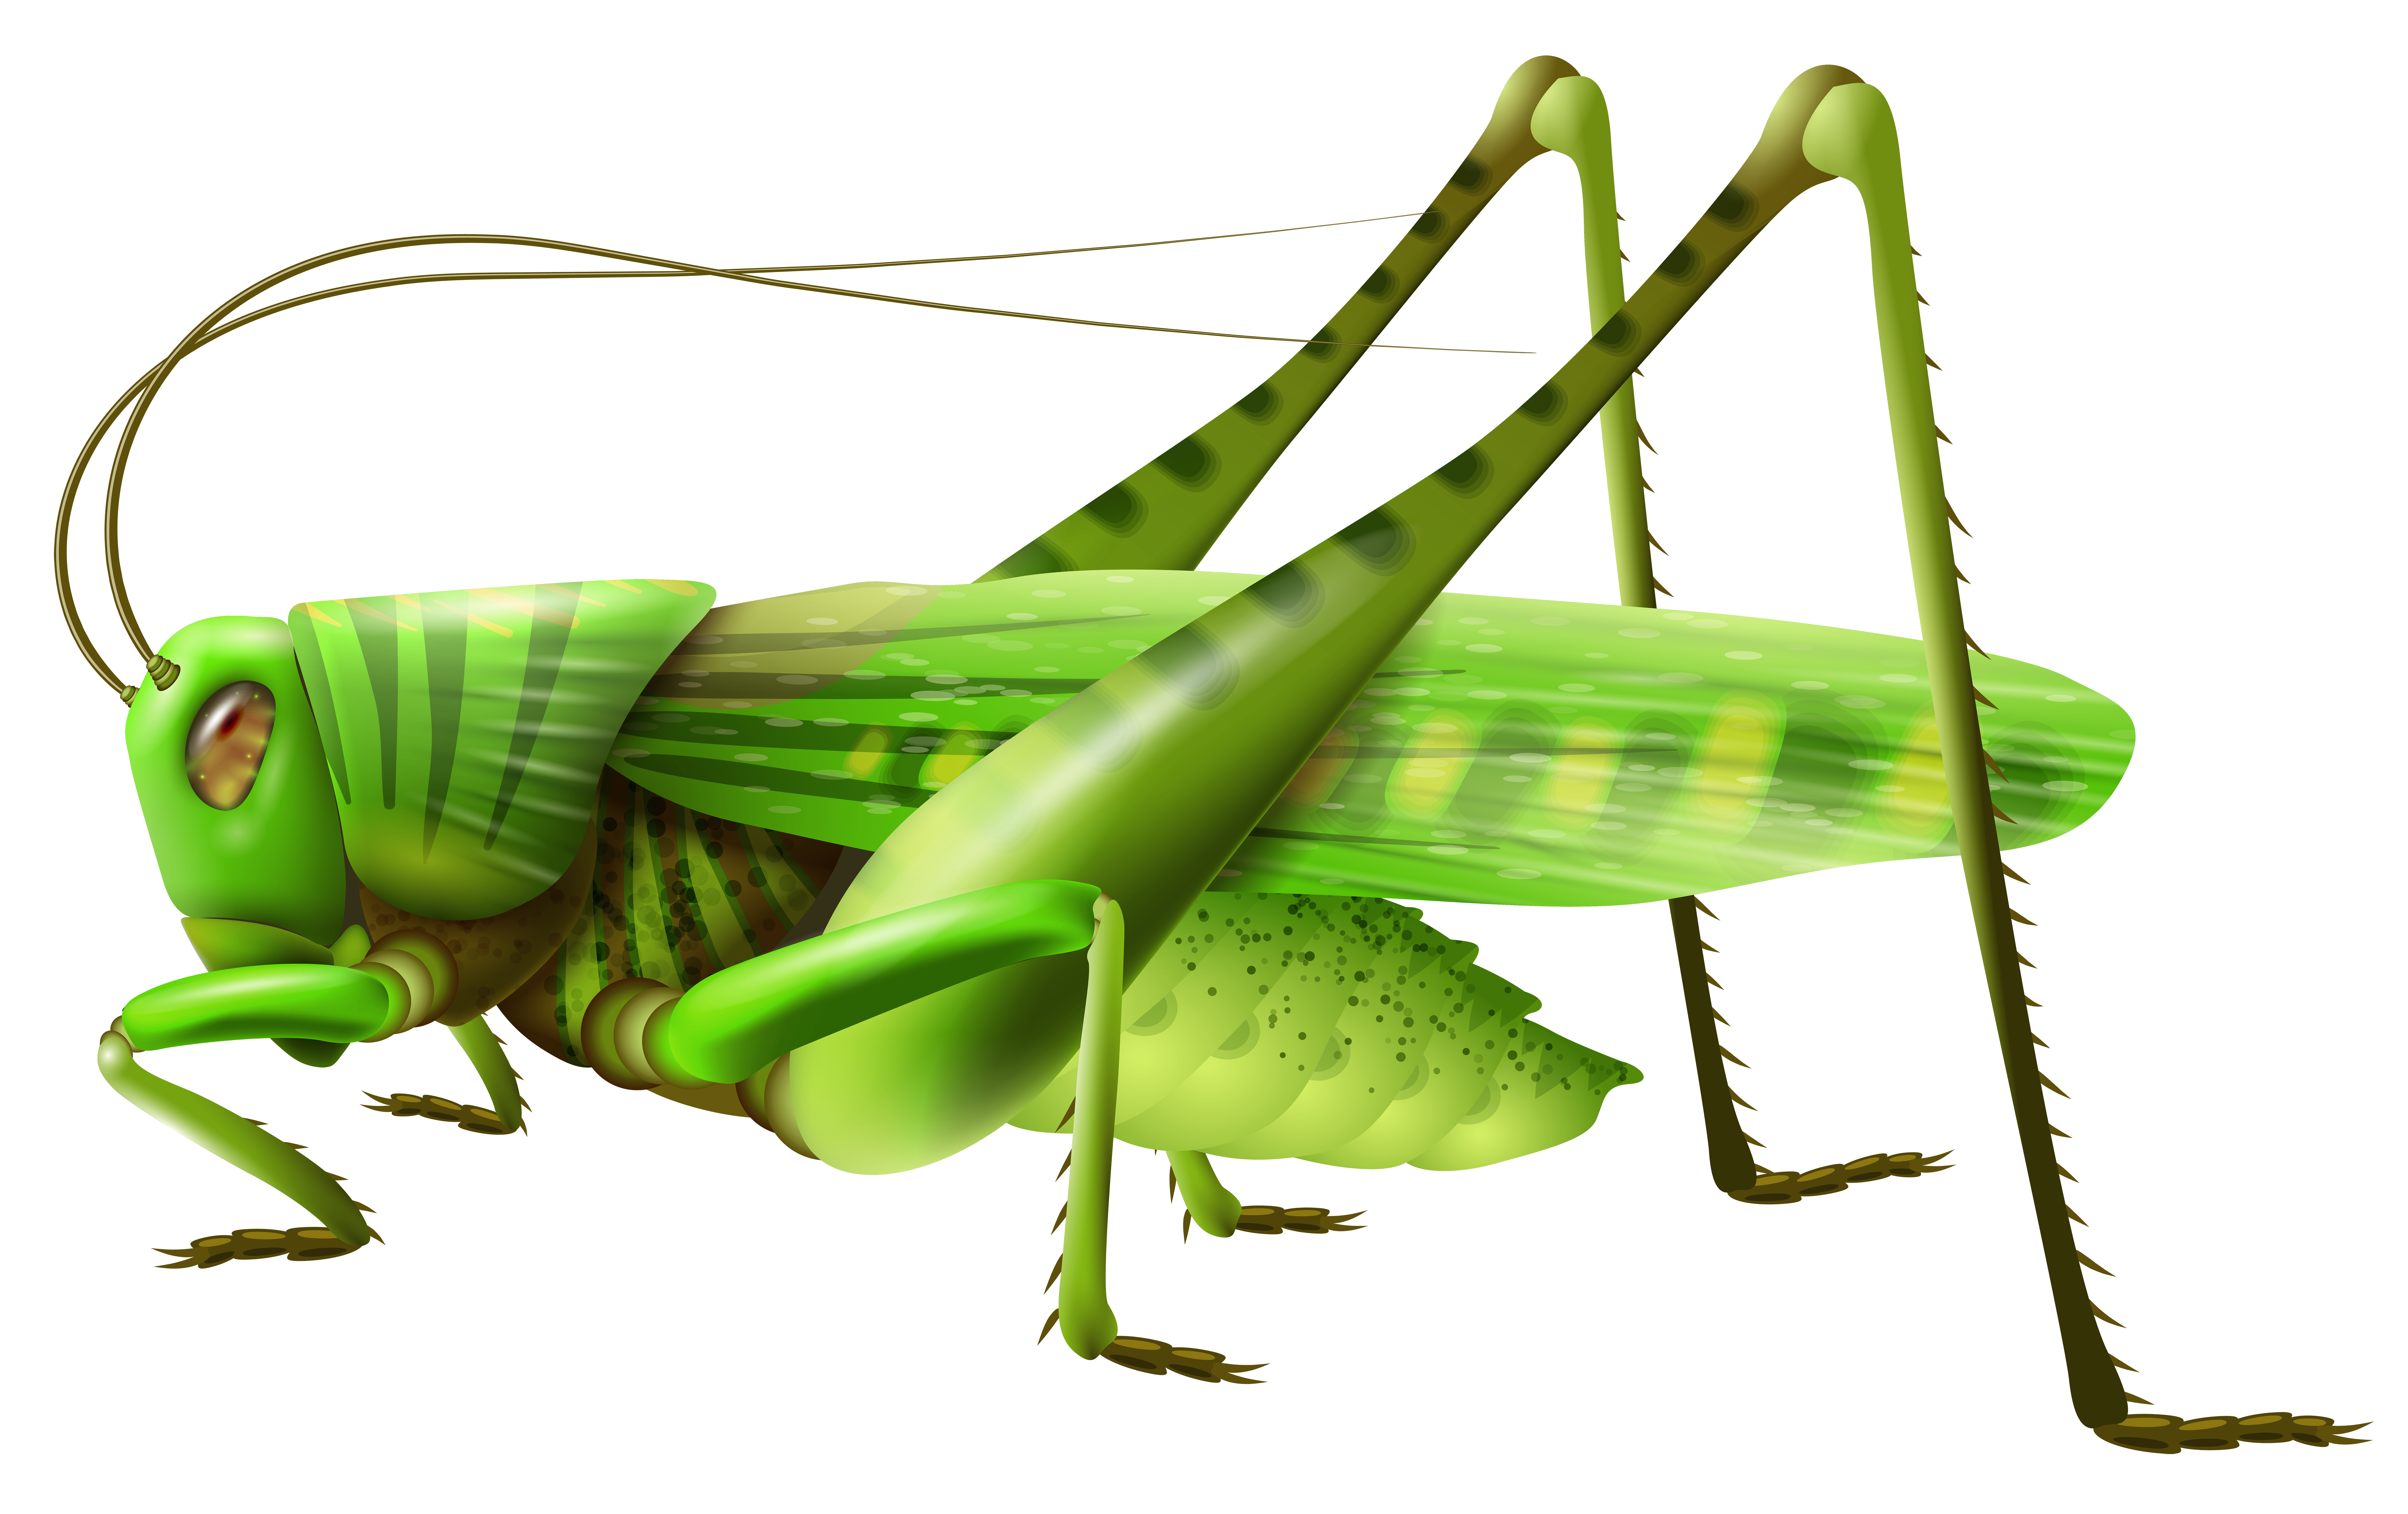 Fly clipart grasshopper. Png images free download